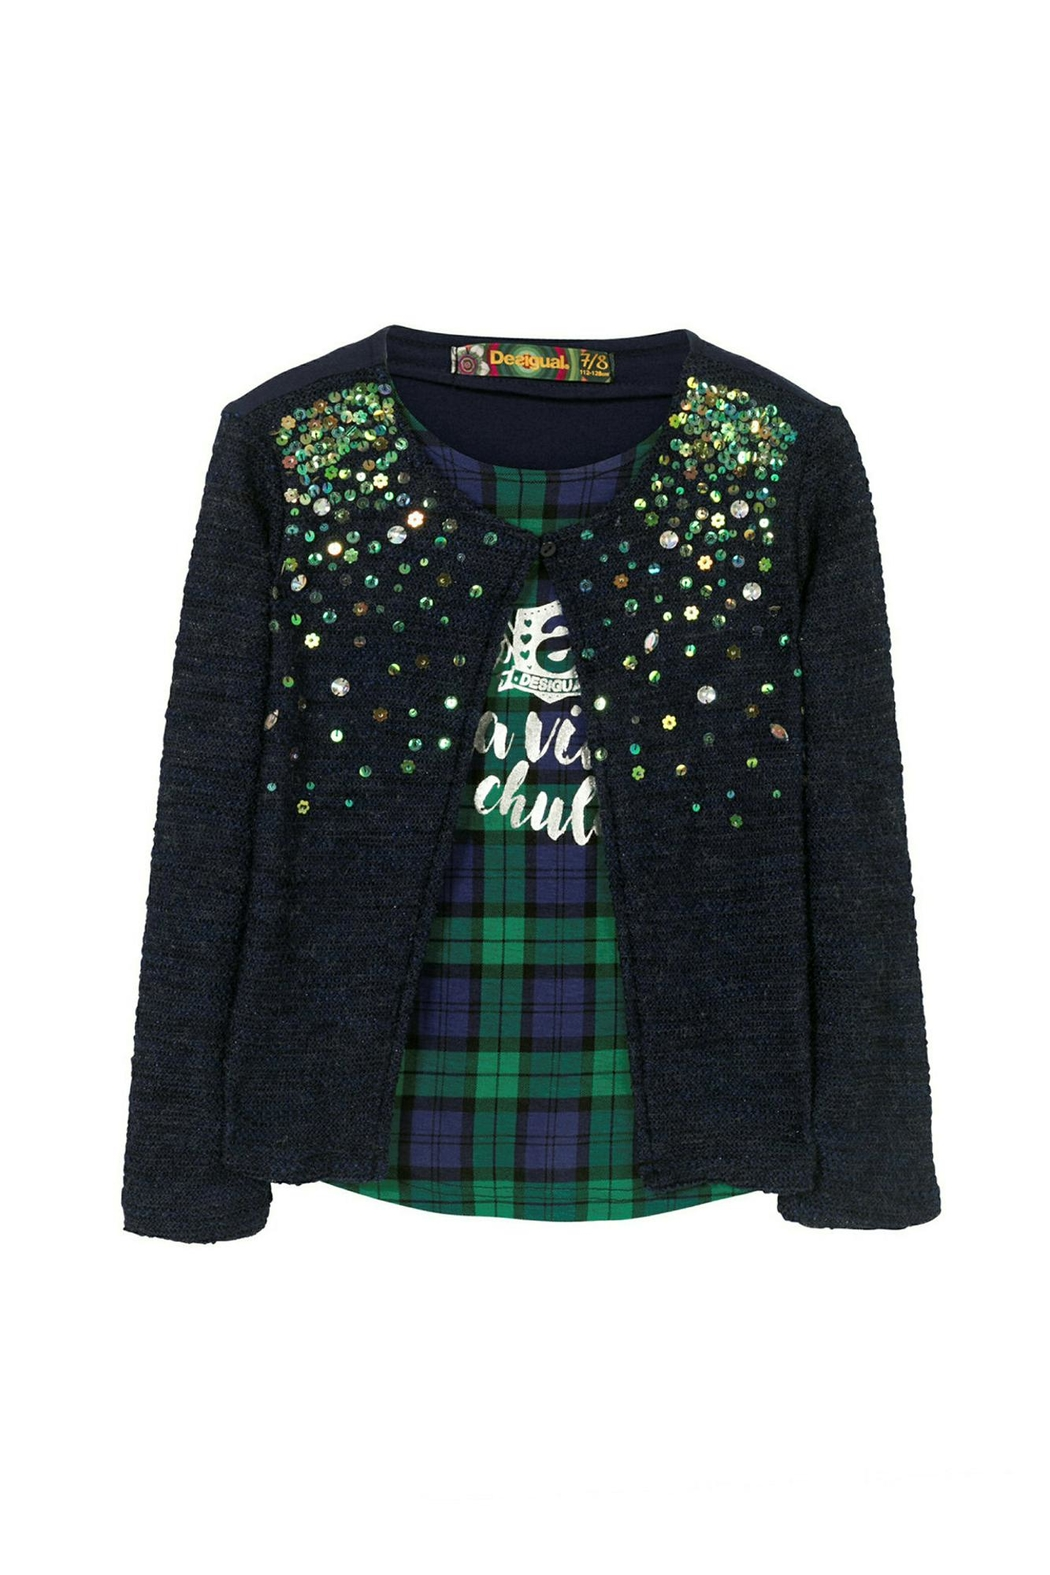 DESIGUAL Sequin Sweater - Main Image